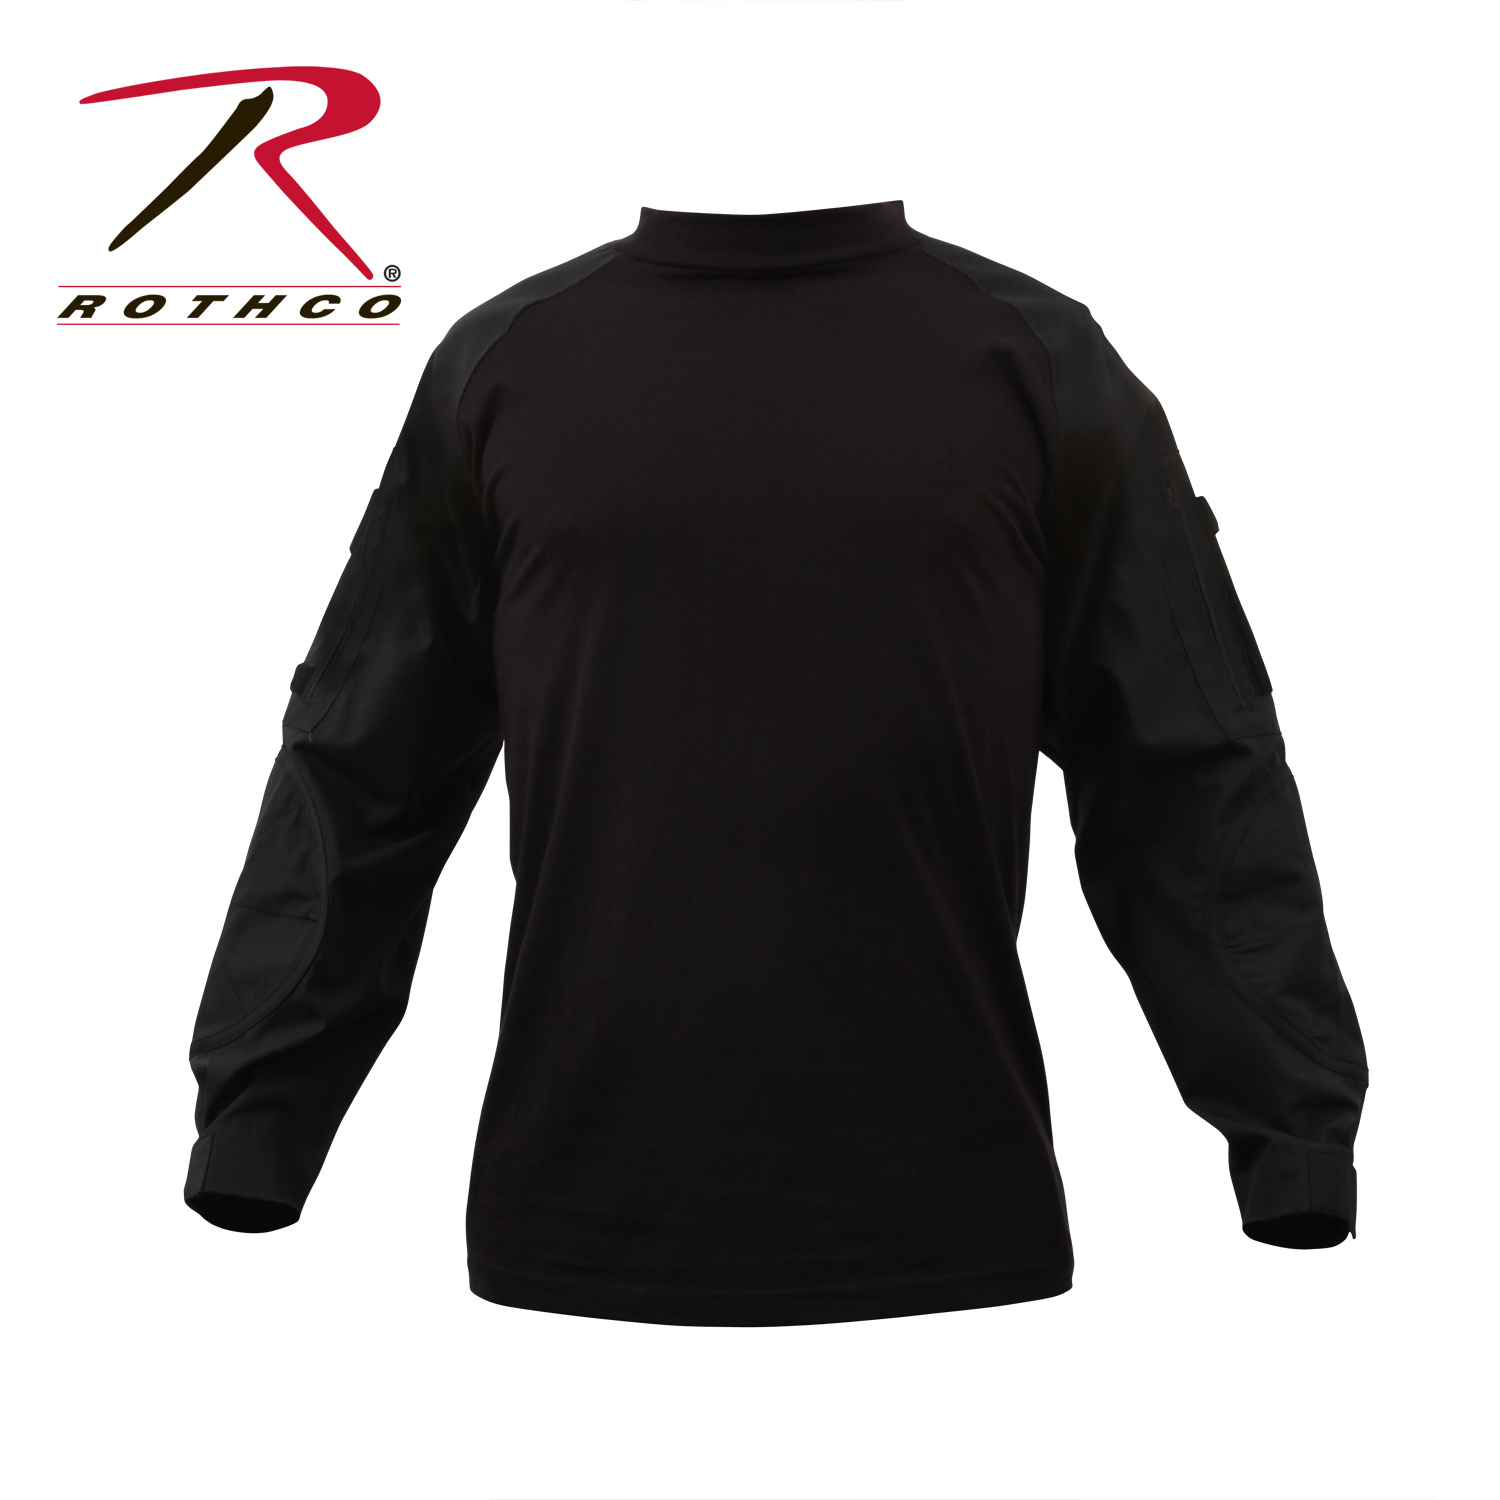 Rothco Tactical Combat Shirt